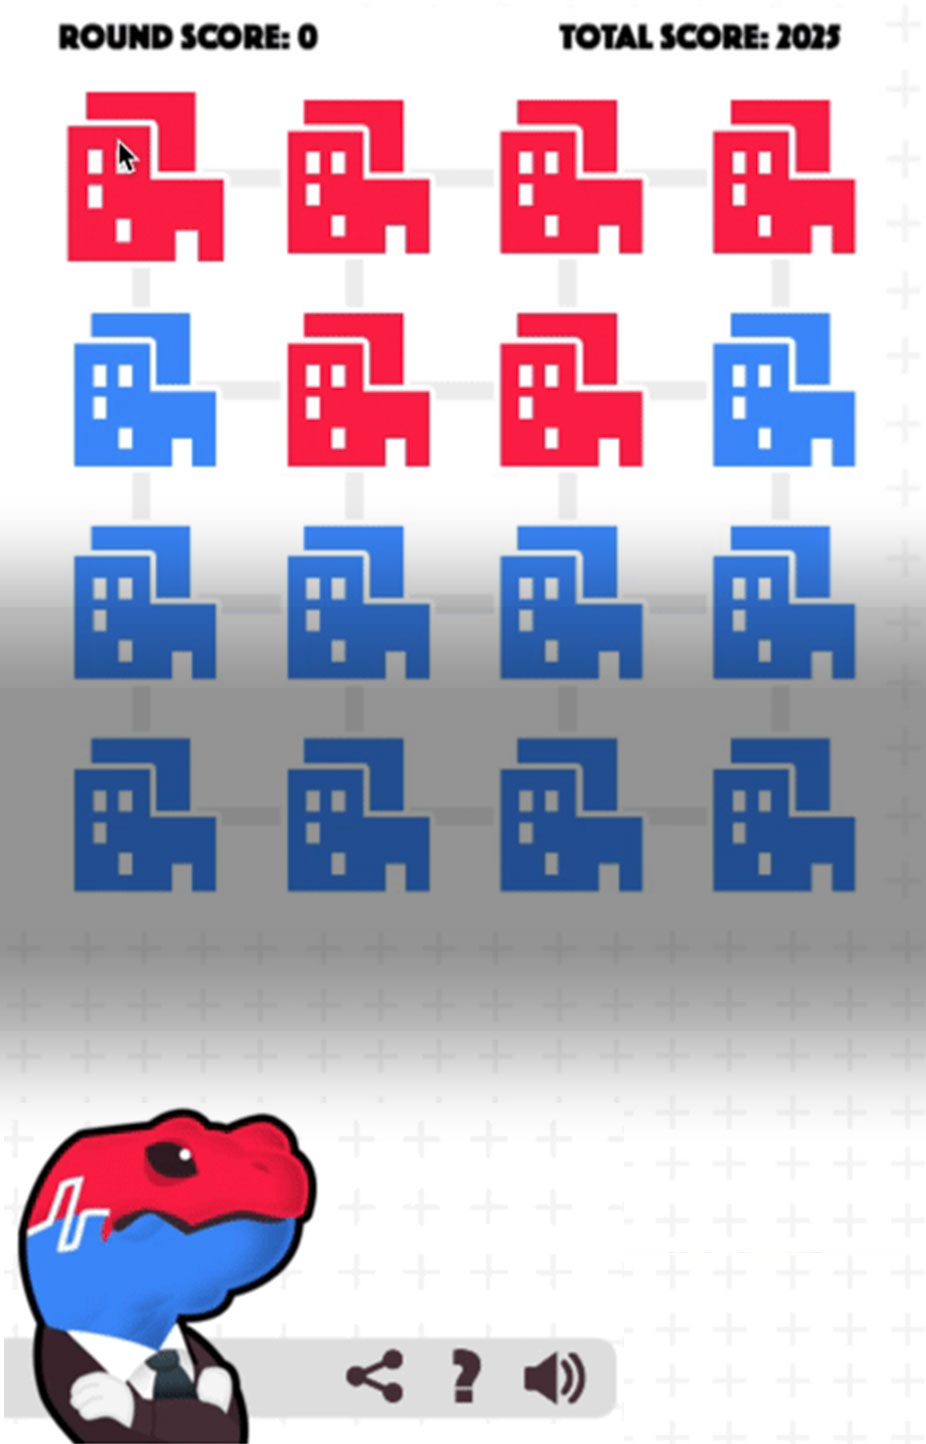 GERRYMANDER - An easy to share HTML5 game that explains Gerrymandering with simple puzzles.